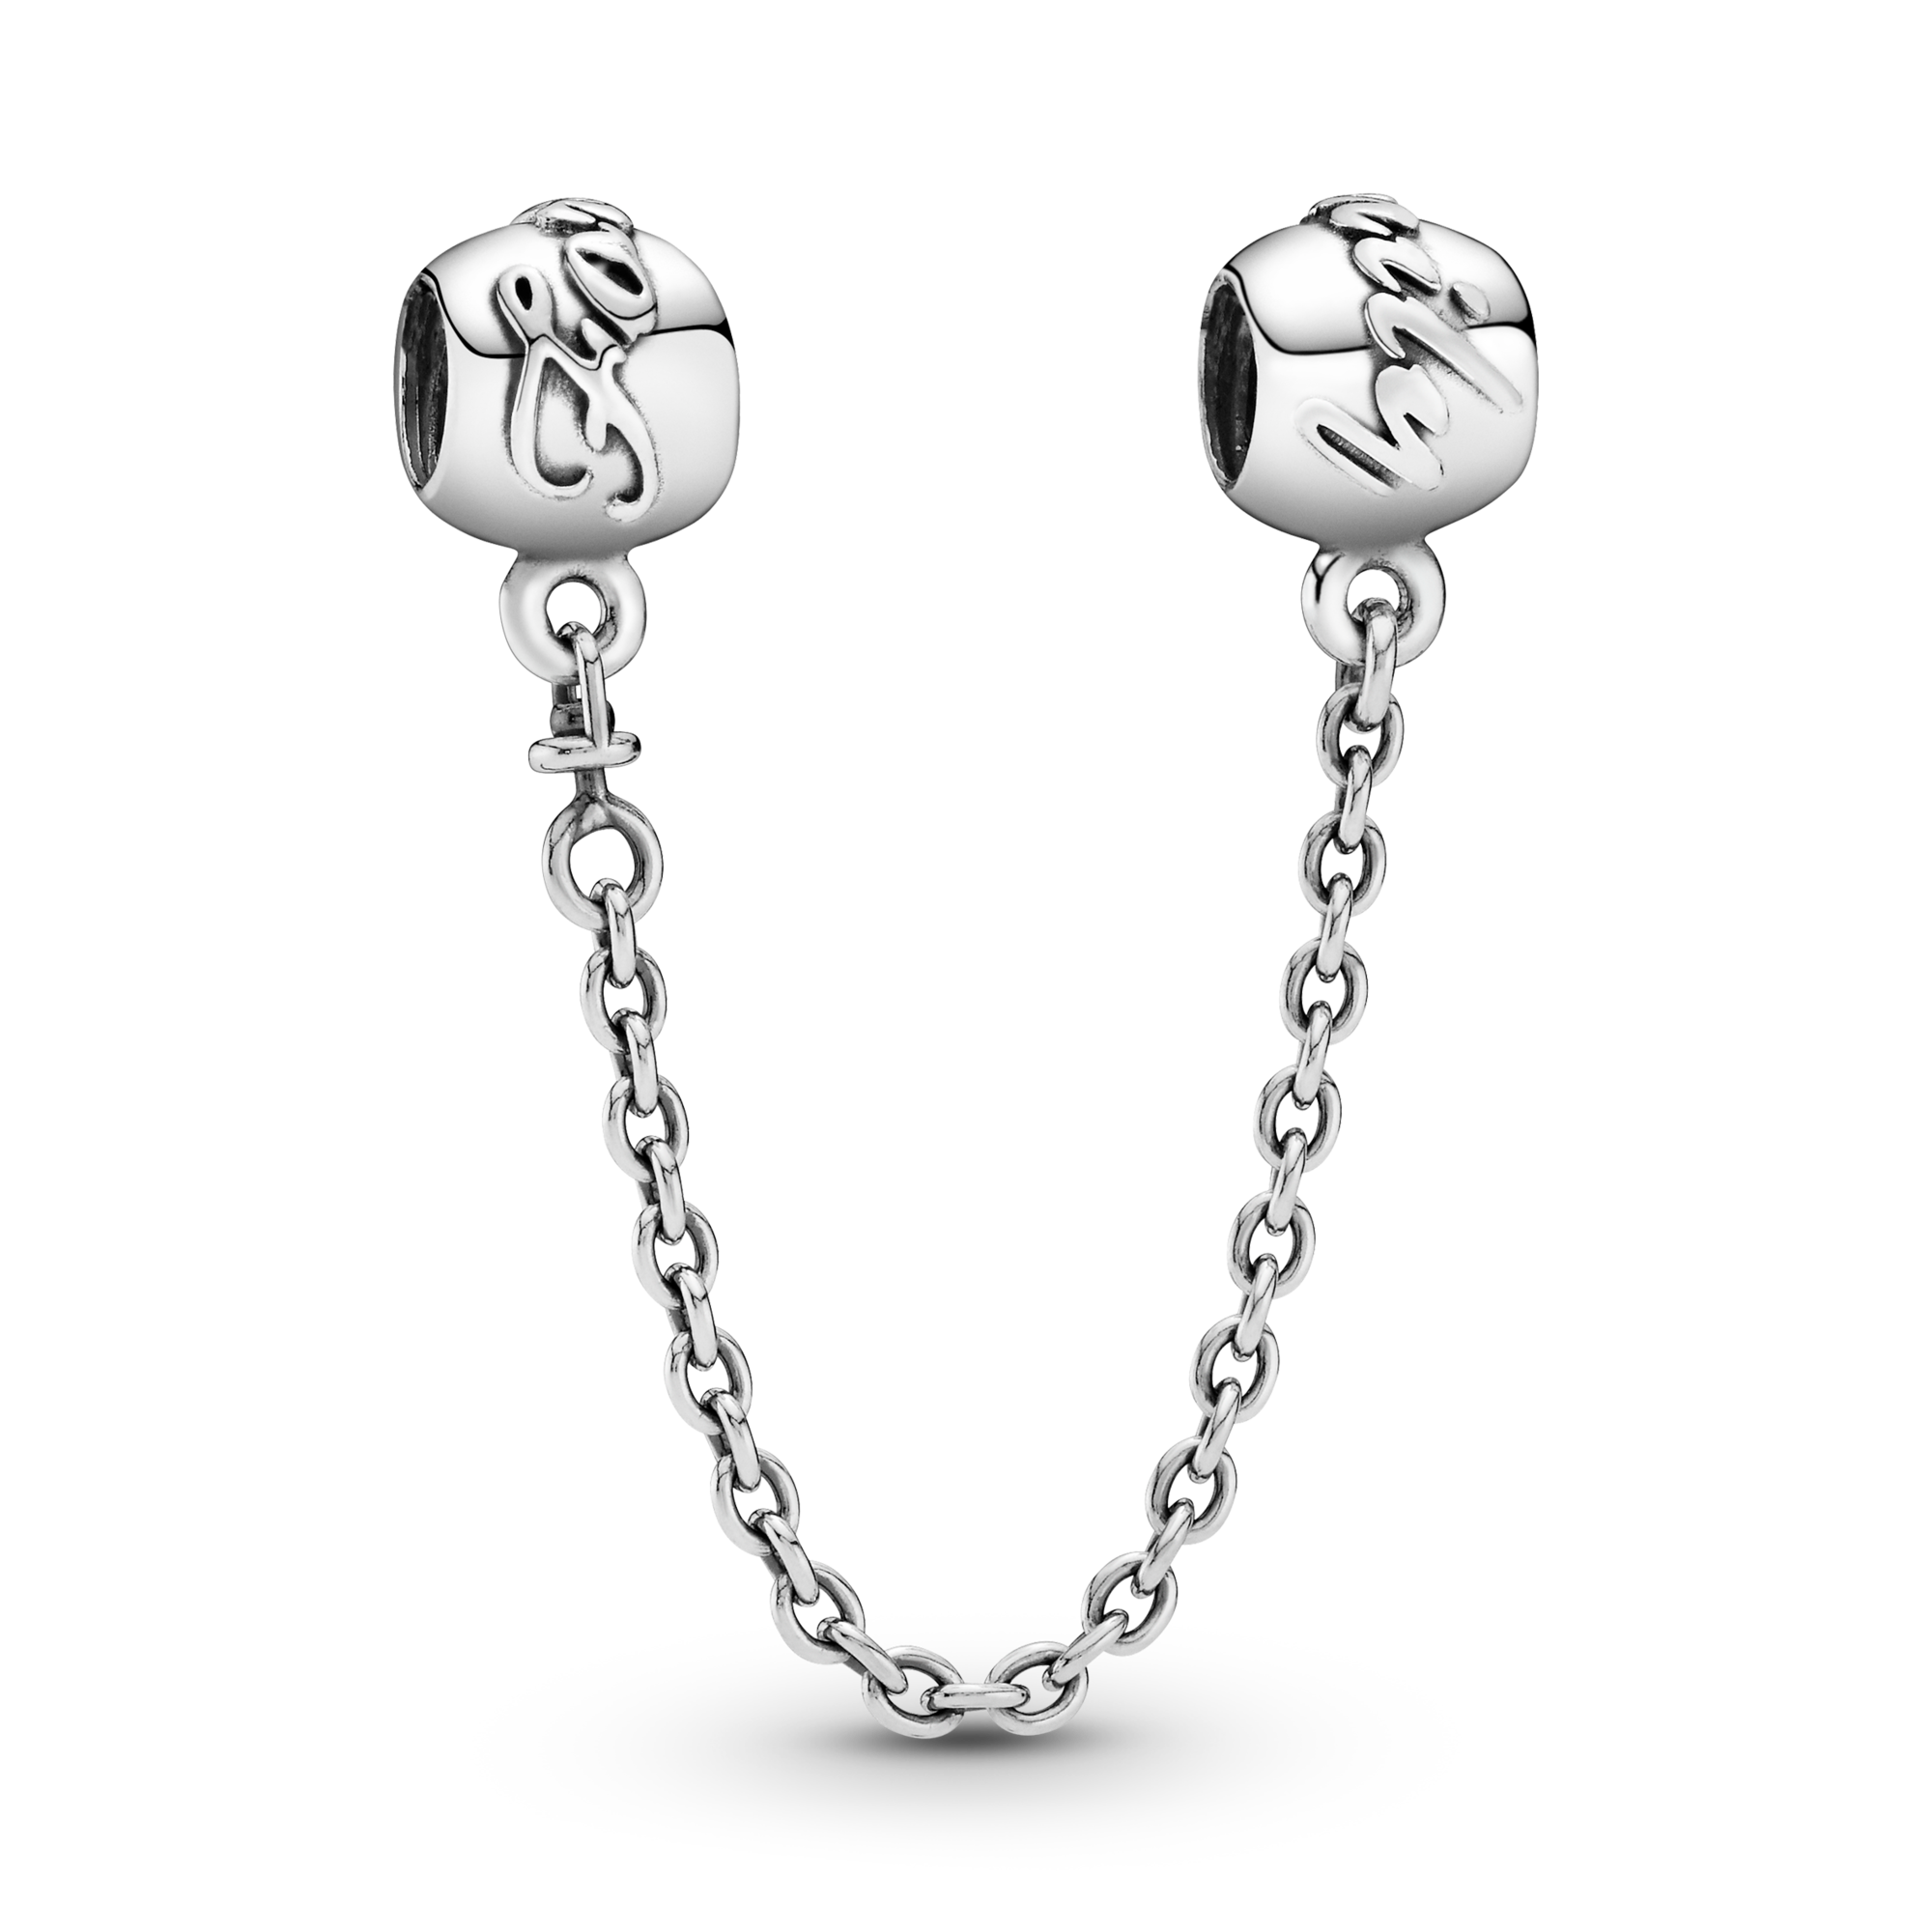 Family Forever Safety Chain Charm